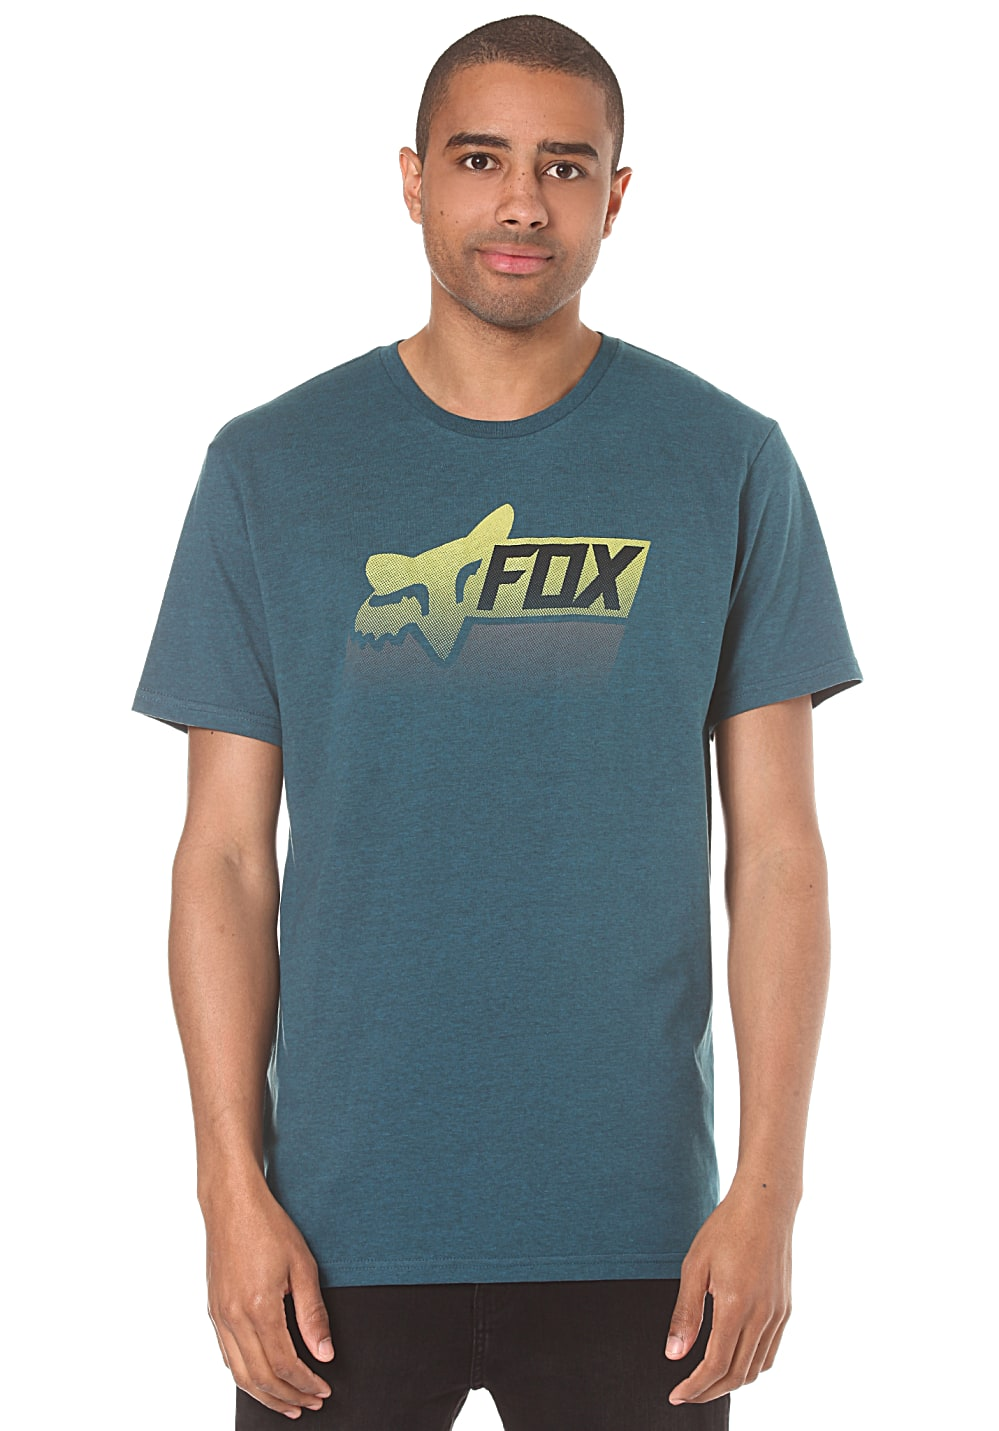 FOX Processed - T-Shirt für Herren - Blau - S